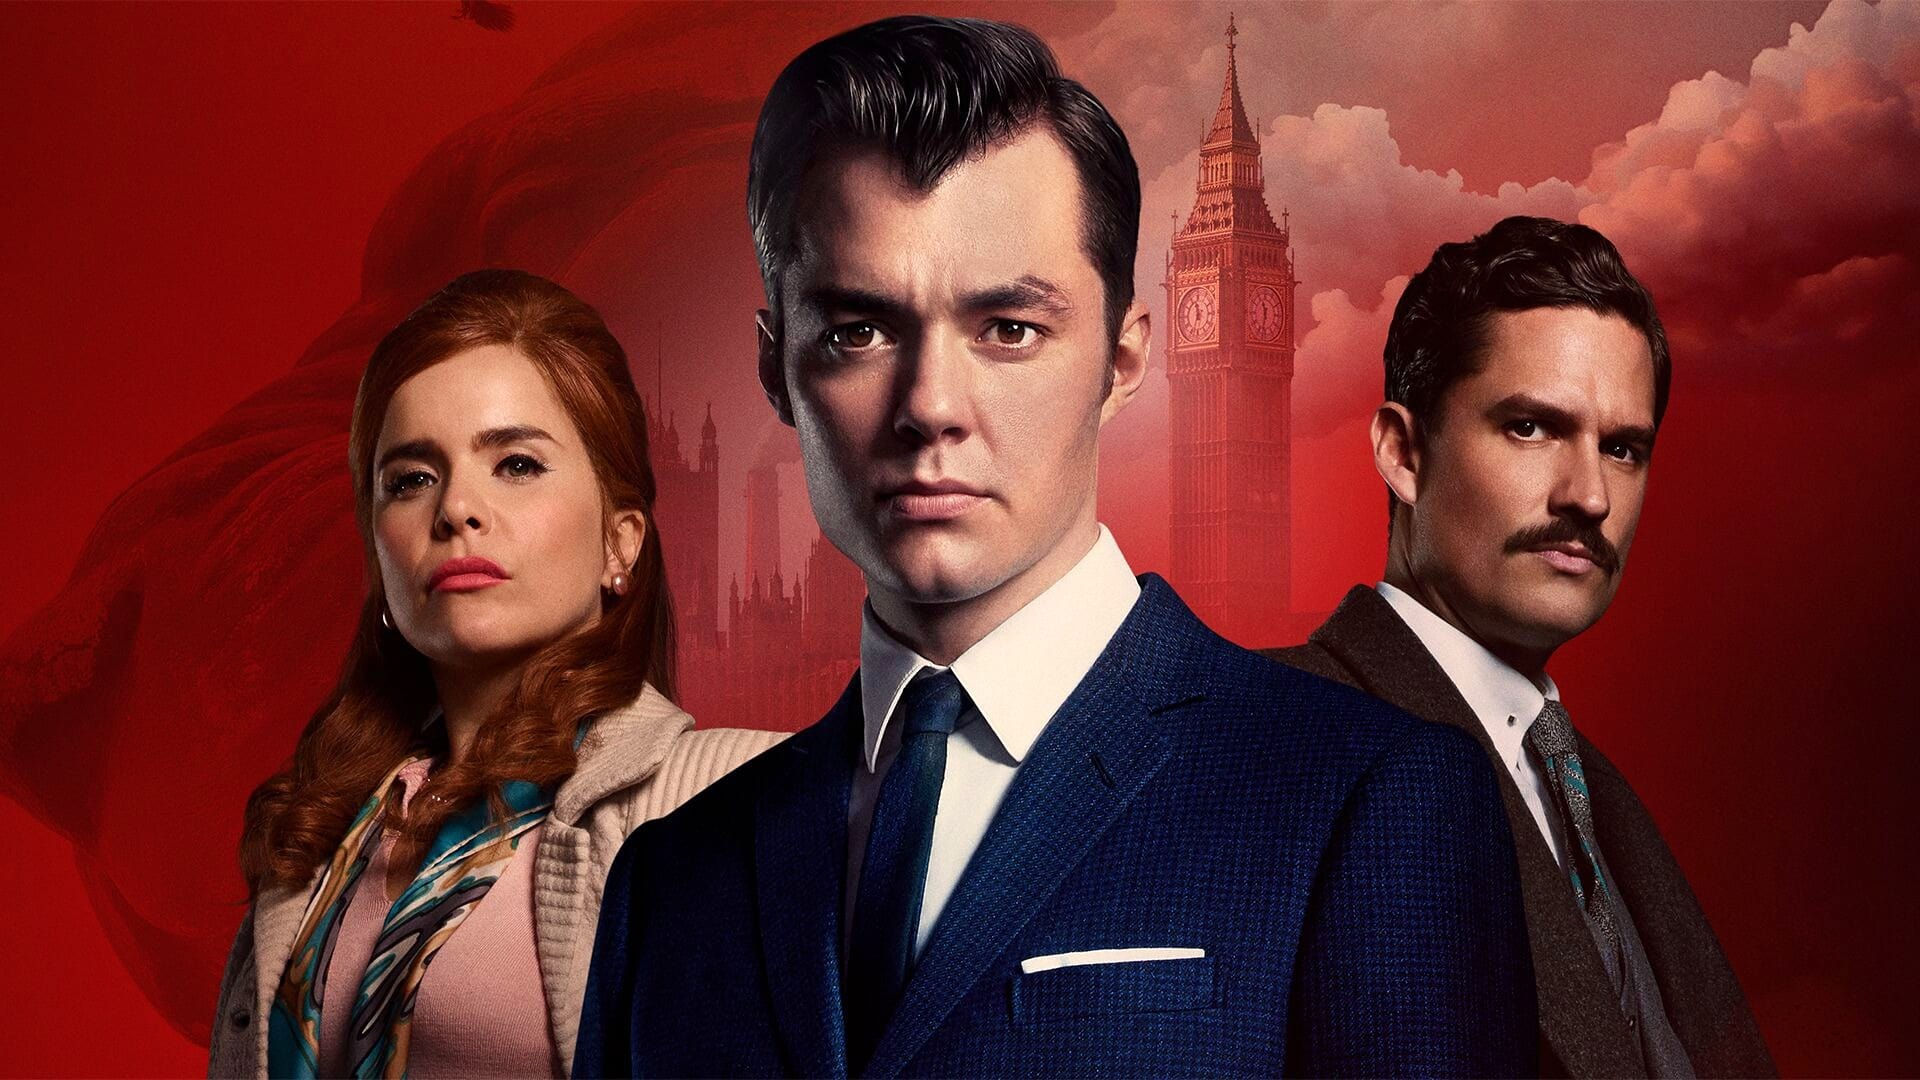 Second season Pennyworth to premiere in the middle of December